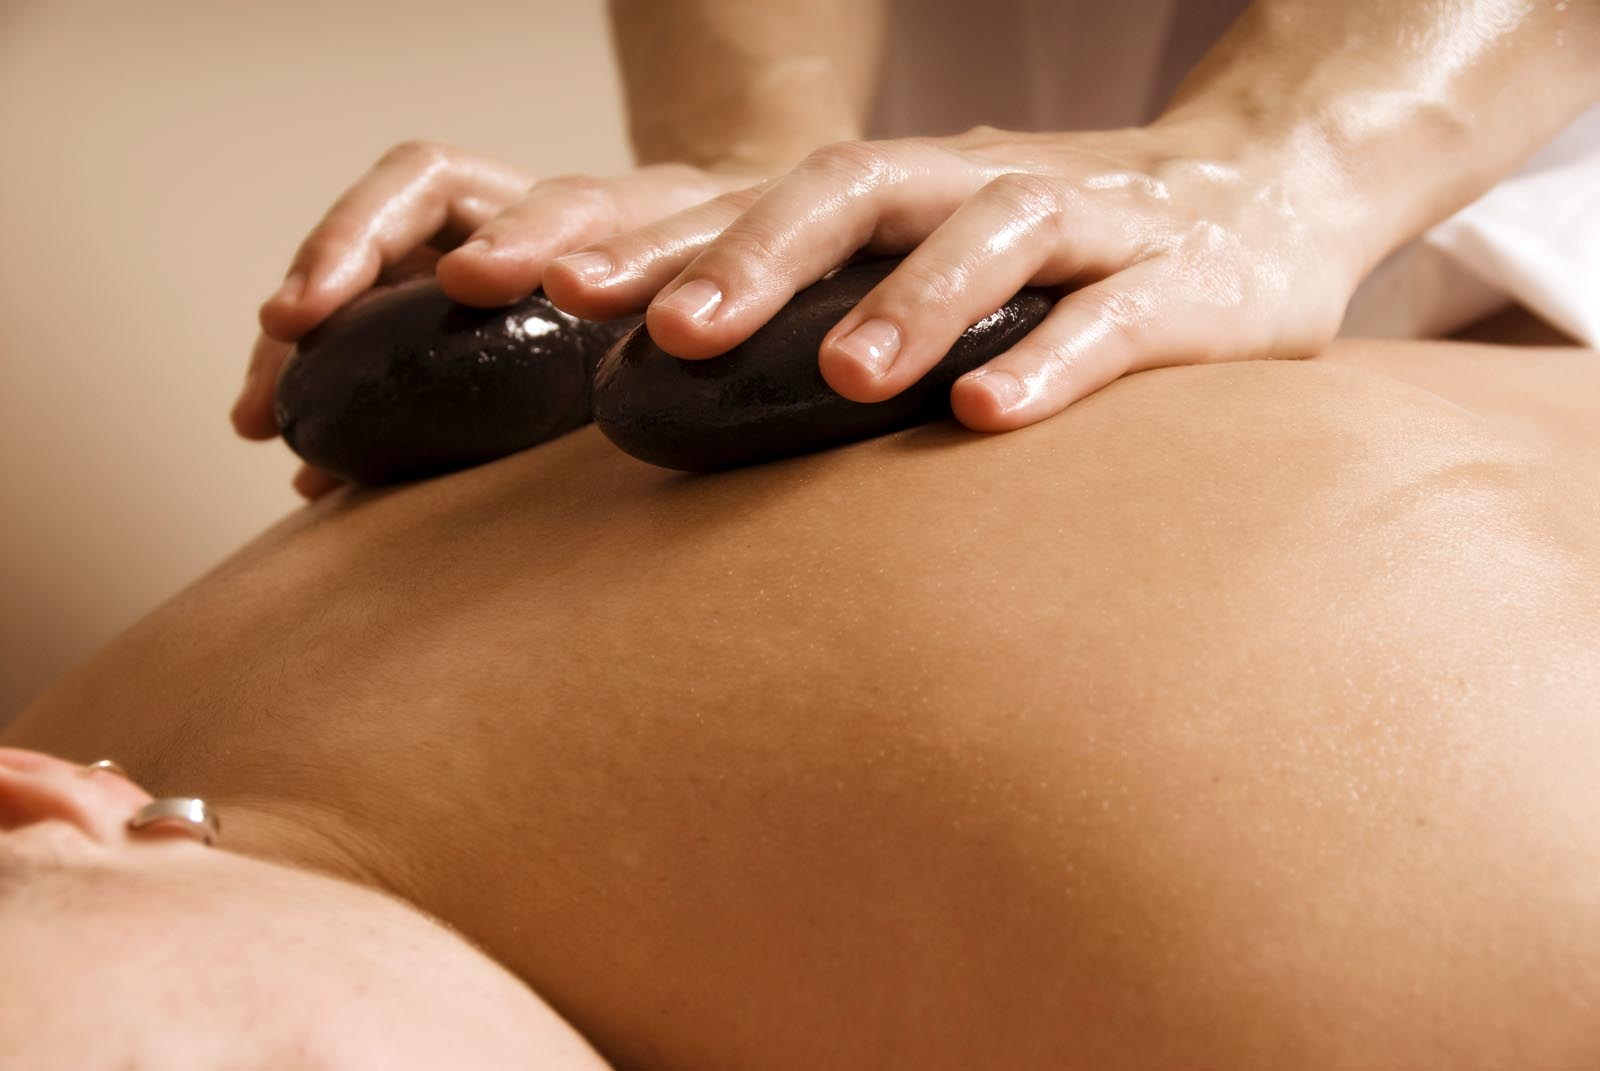 woman in a day spa getting a stone treatment